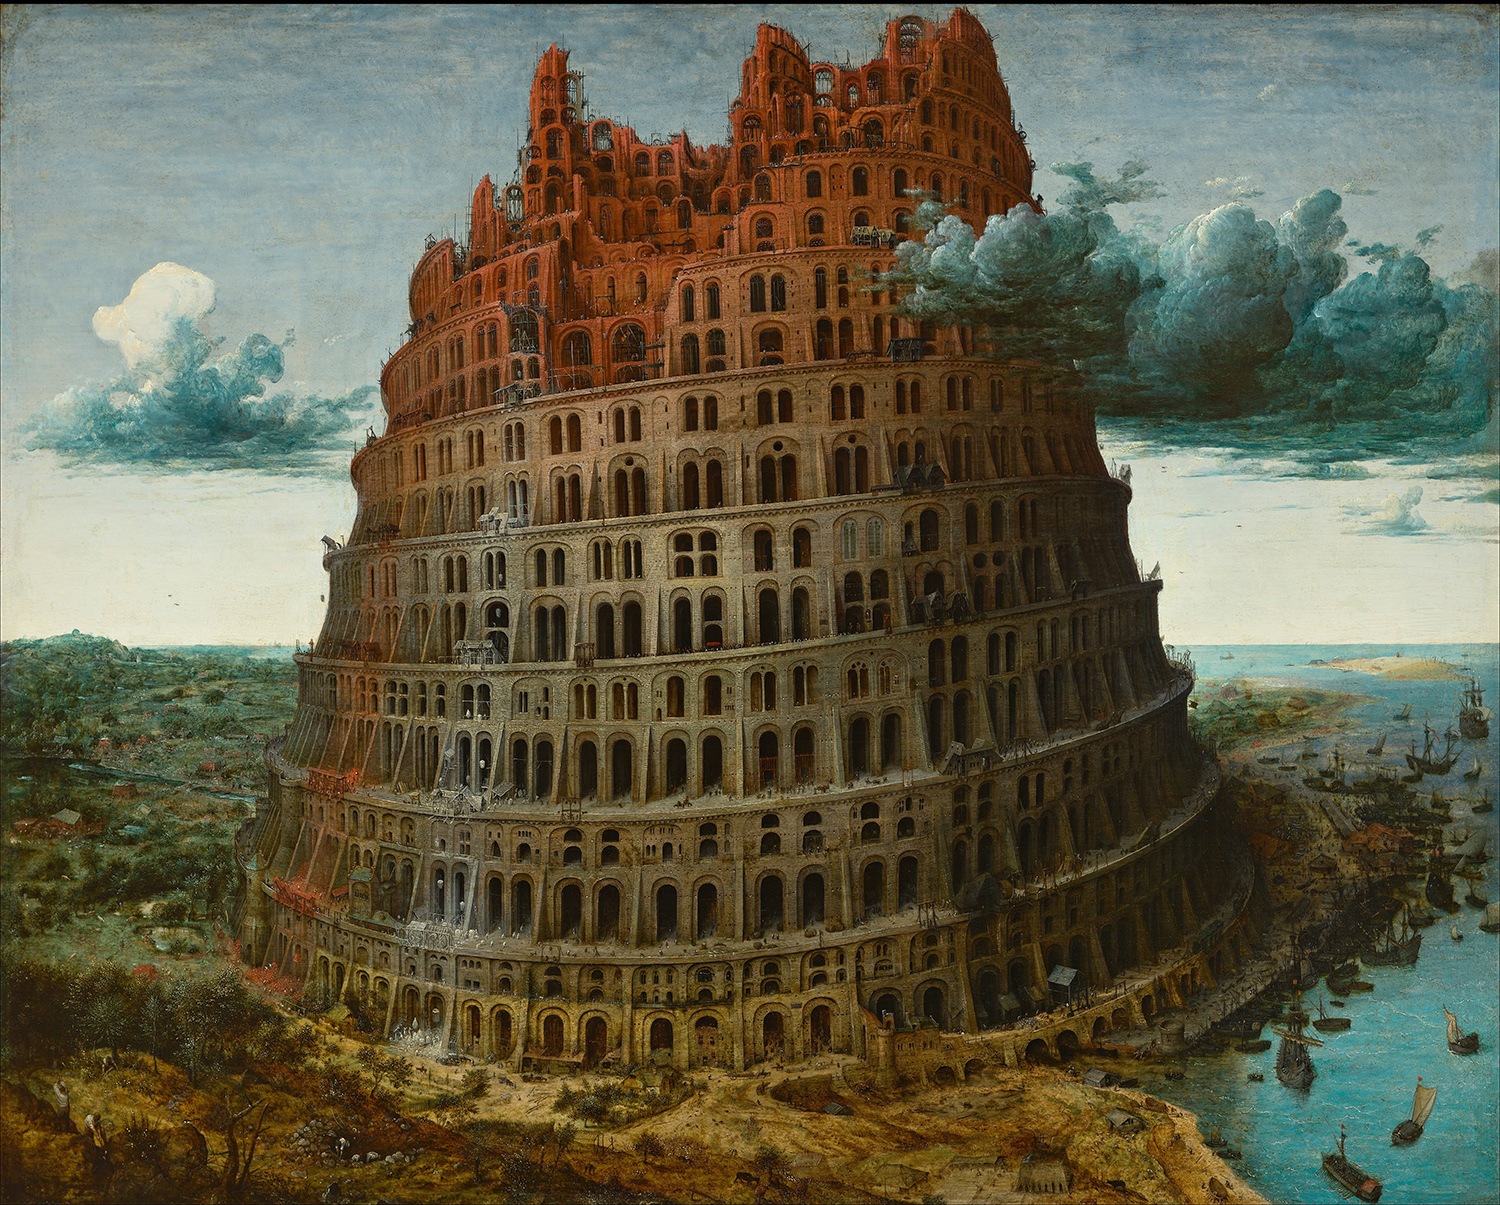 Pieter Bruegel the Elder The Tower of Babel (Rotterdam)